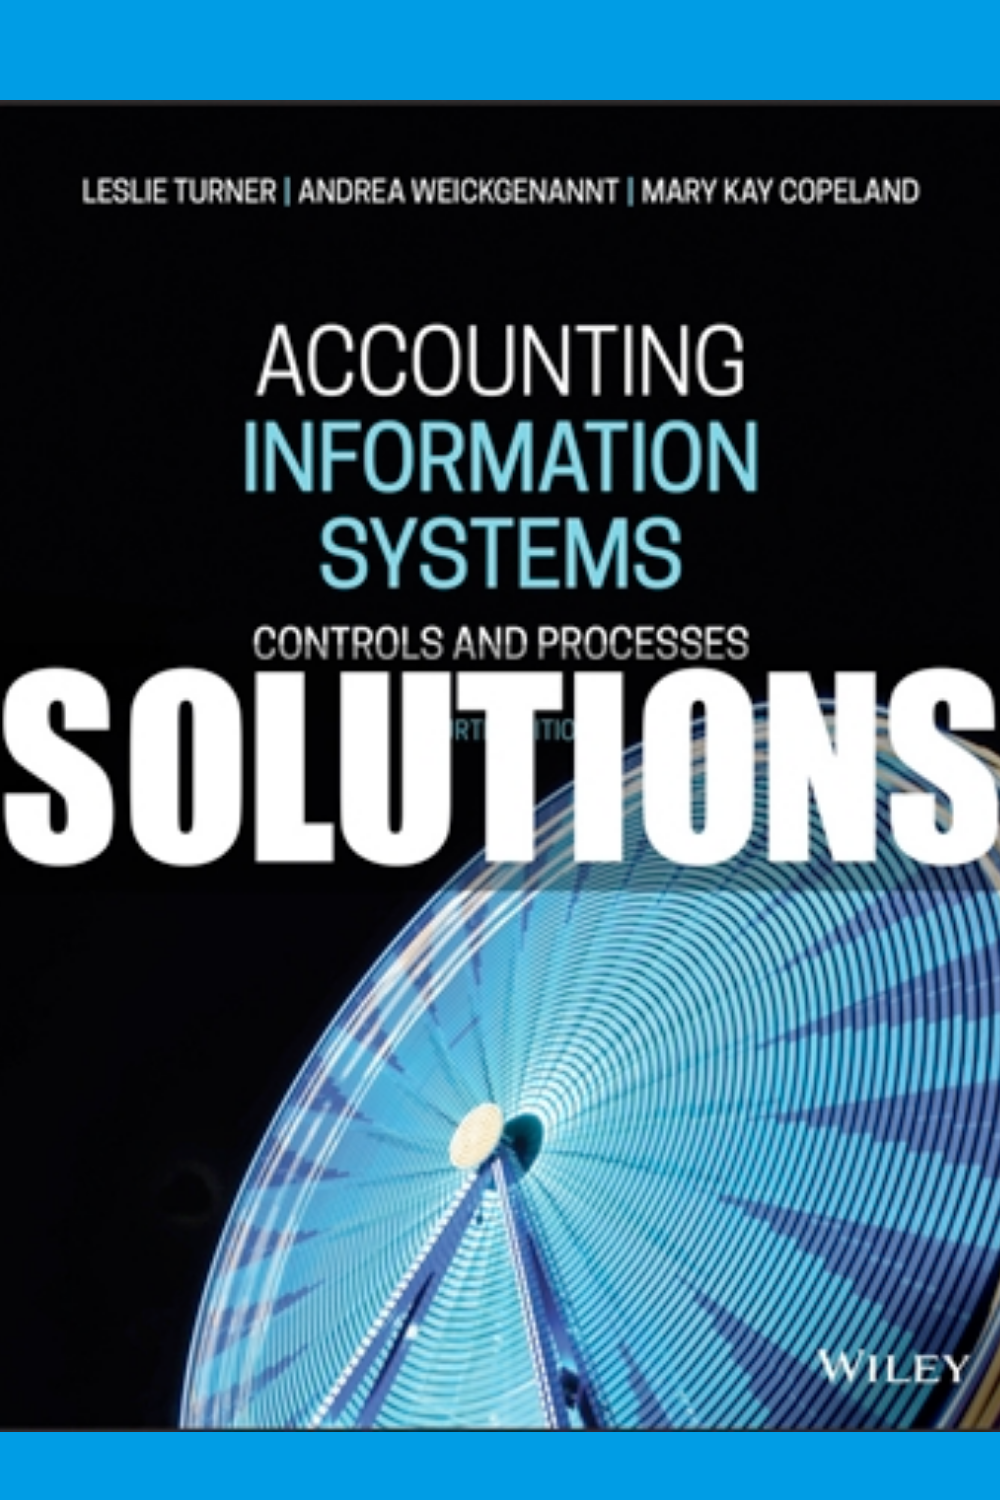 Solutions Manual For Accounting Information Systems Controls And Processes 4th Edition Turner Accounting Information Accounting College Textbook